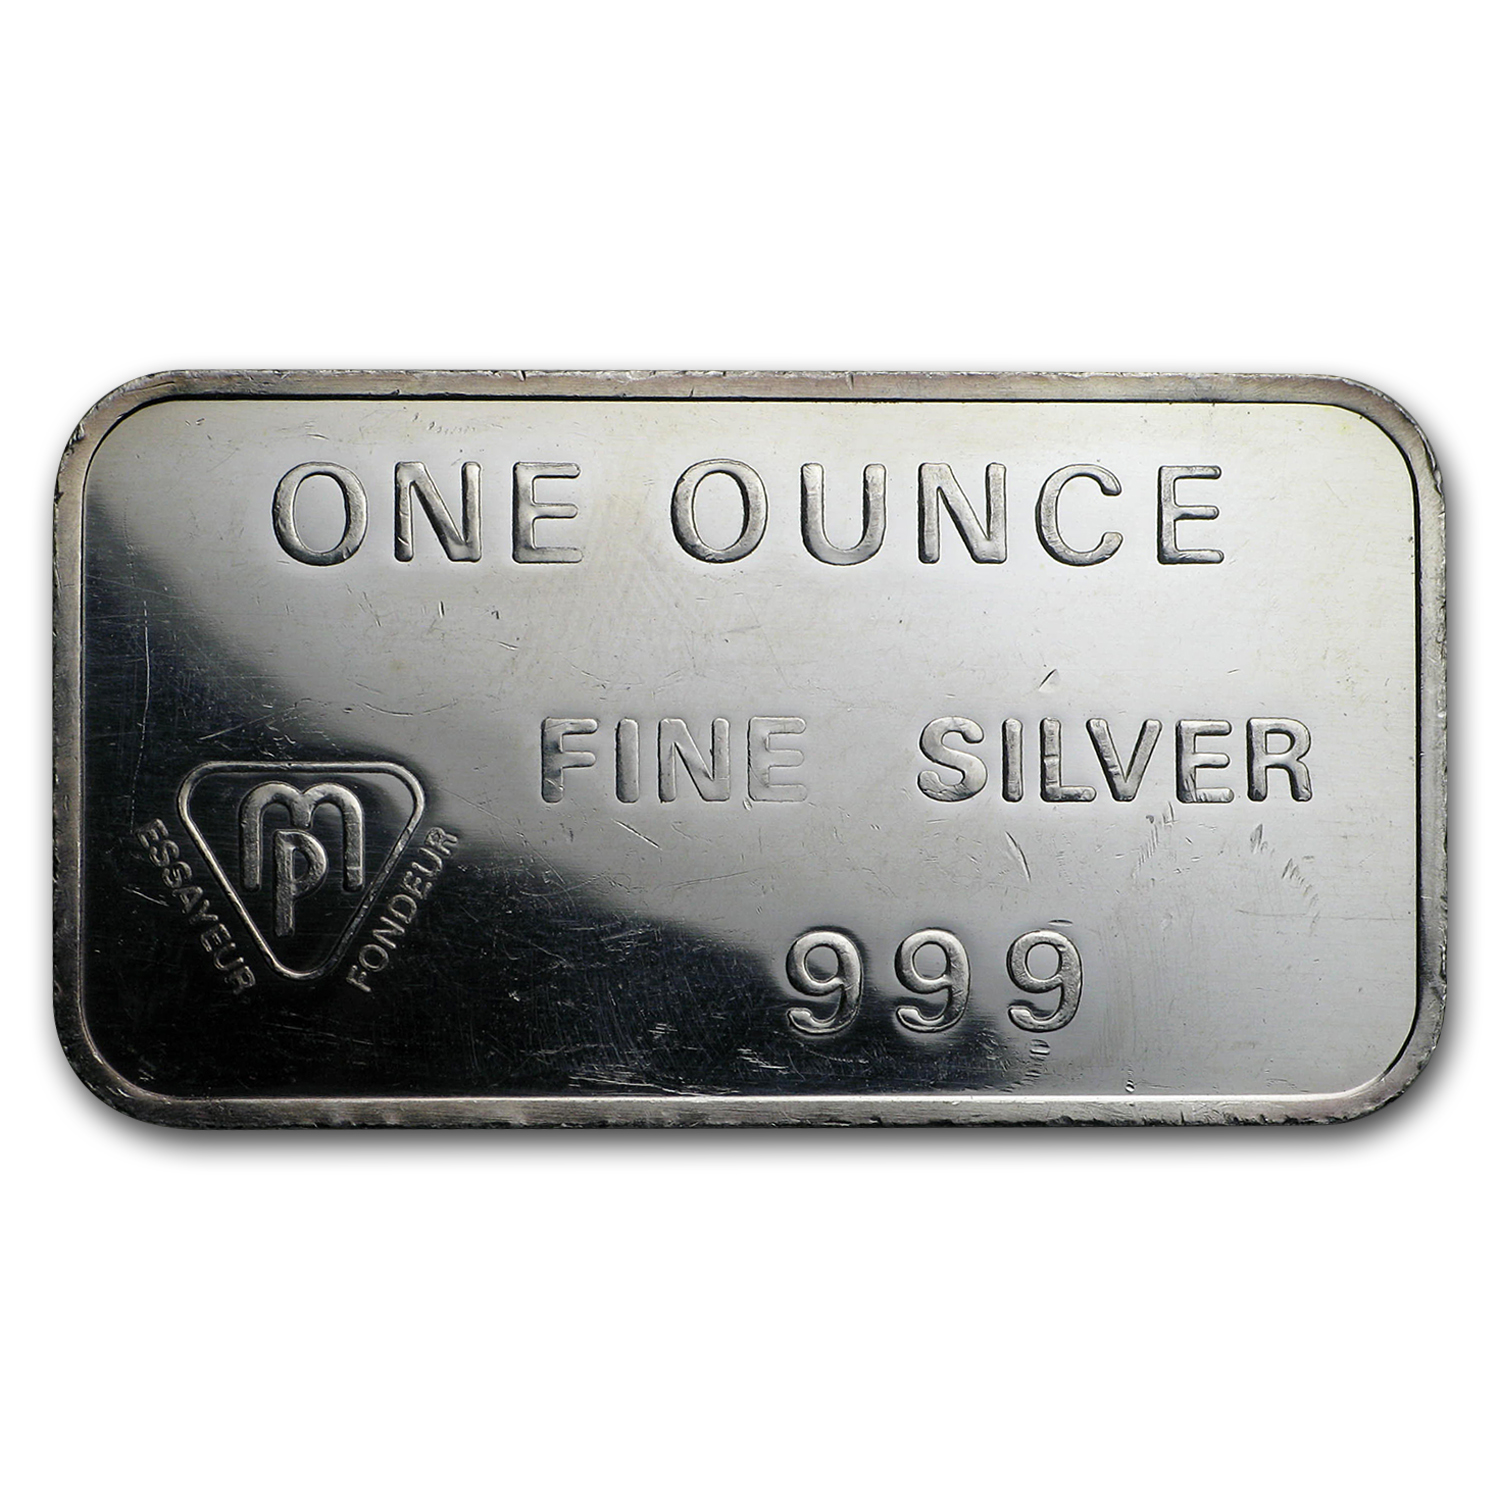 1 oz Silver Bars - Swiss Bank Corporation